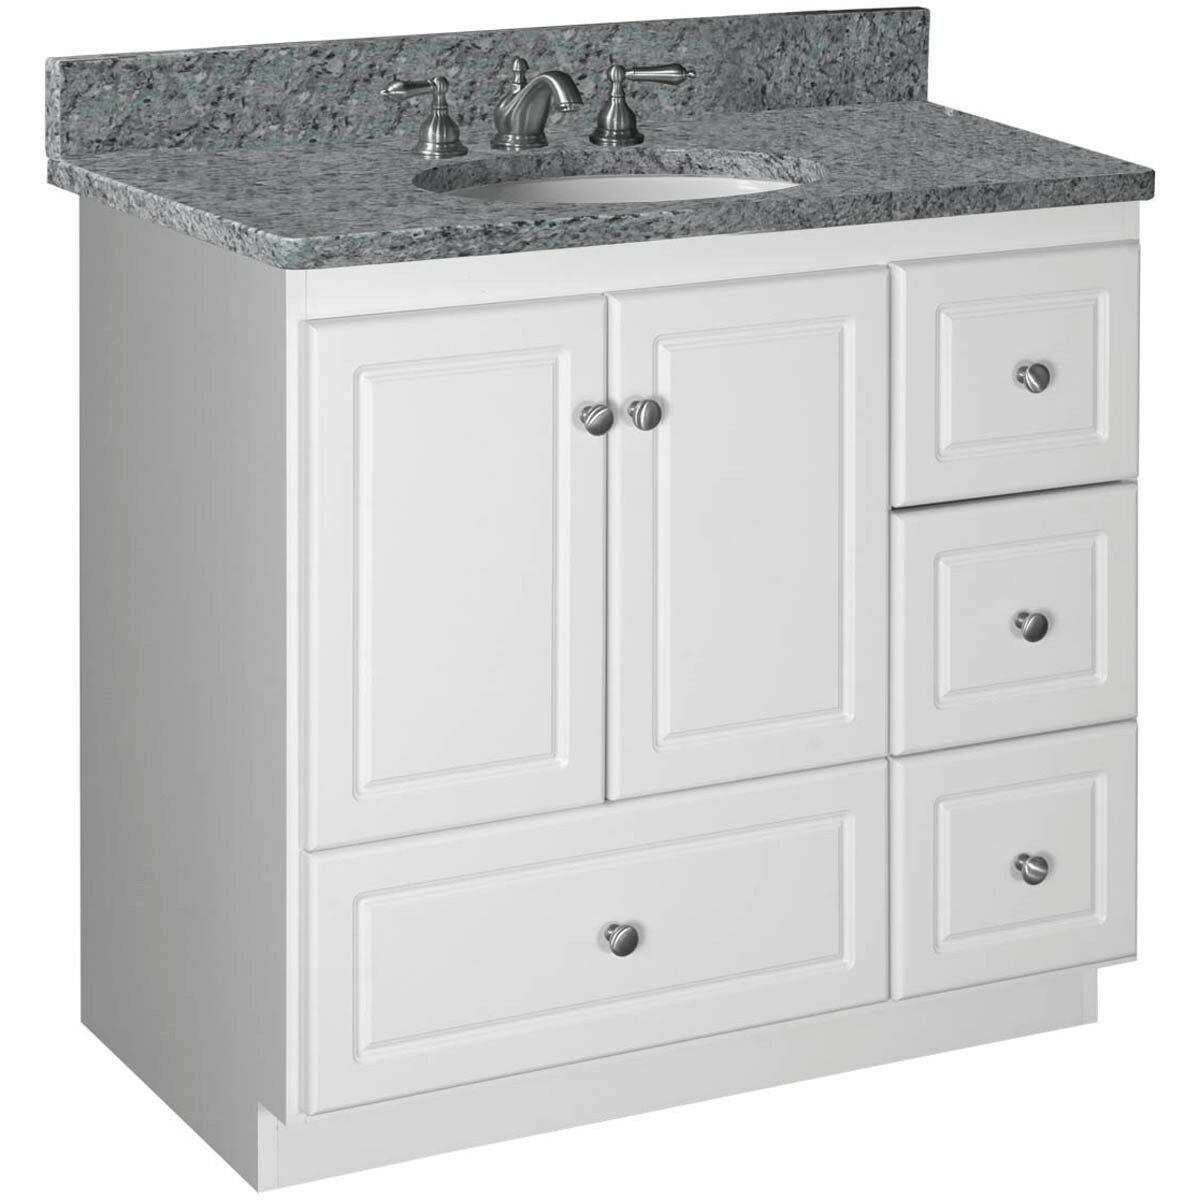 Strasser Woodenworks Simplicity 36 quot  Bathroom Vanity Base. Strasser Woodenworks Simplicity 36  Bathroom Vanity Base   Reviews